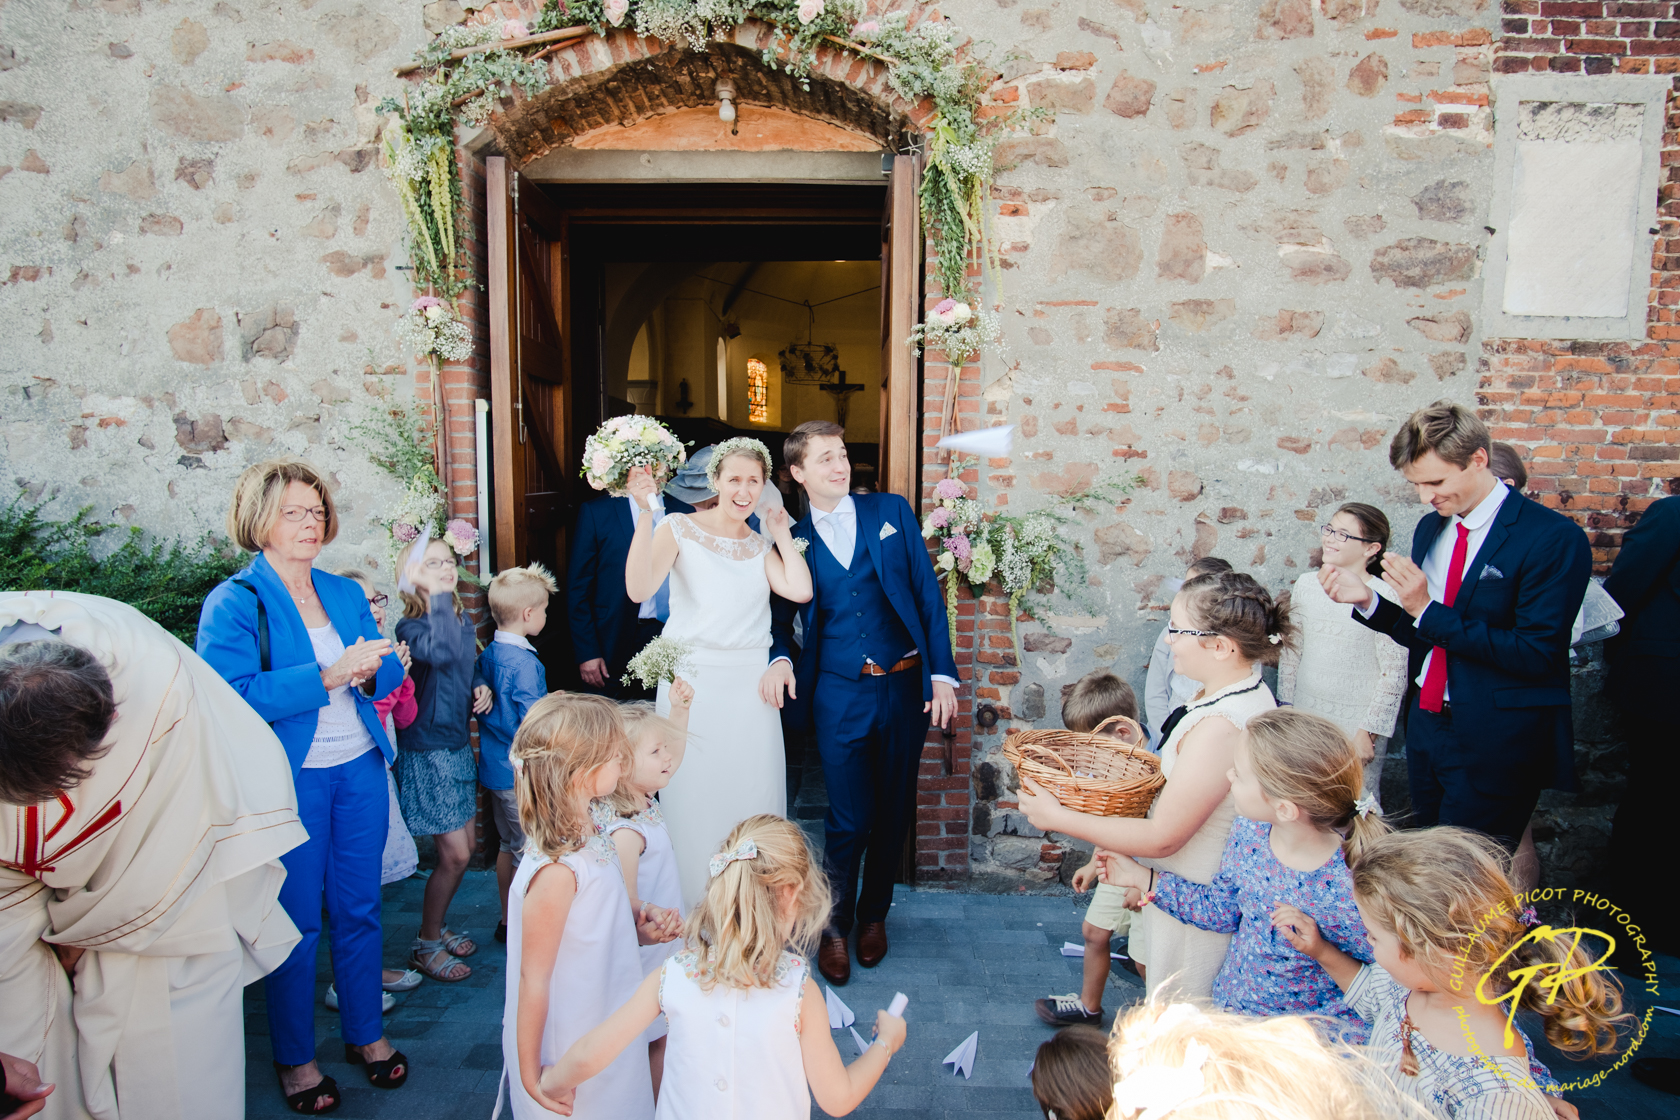 mariage-claire-fontaine-wicres-74-sur-151